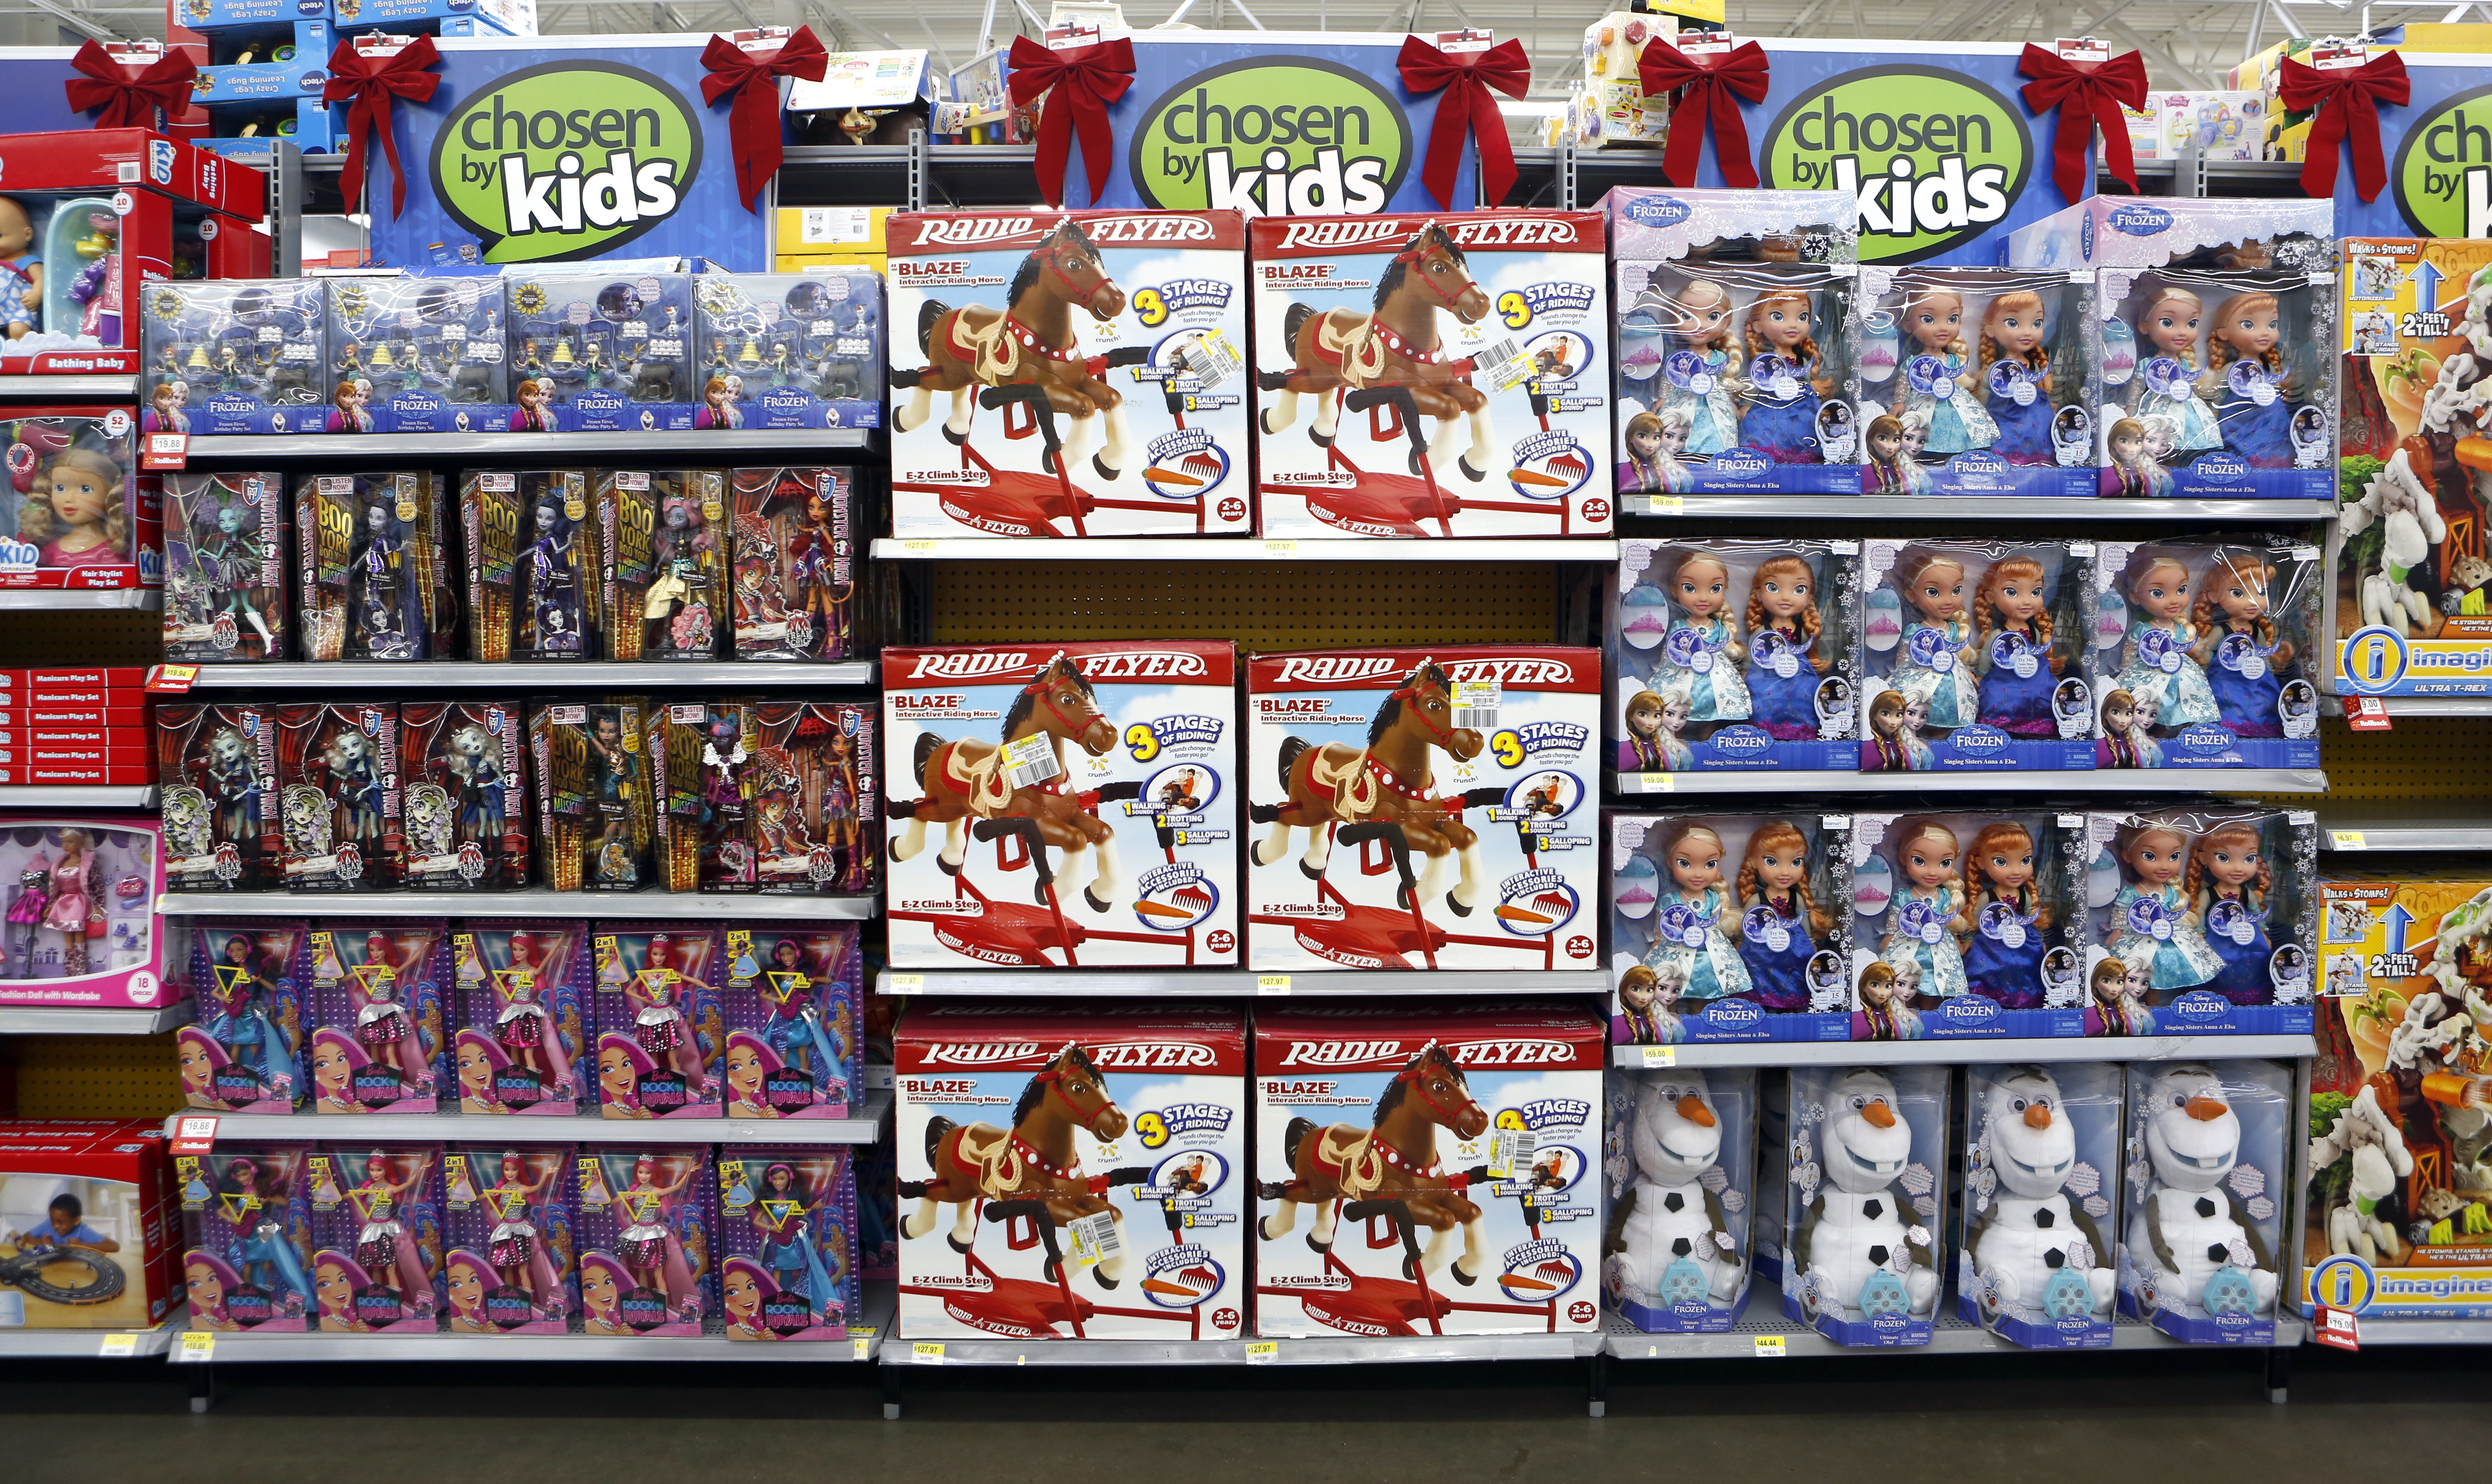 Shelves stocked with toys at Walmart in Dallas. Photo/Lara Solt